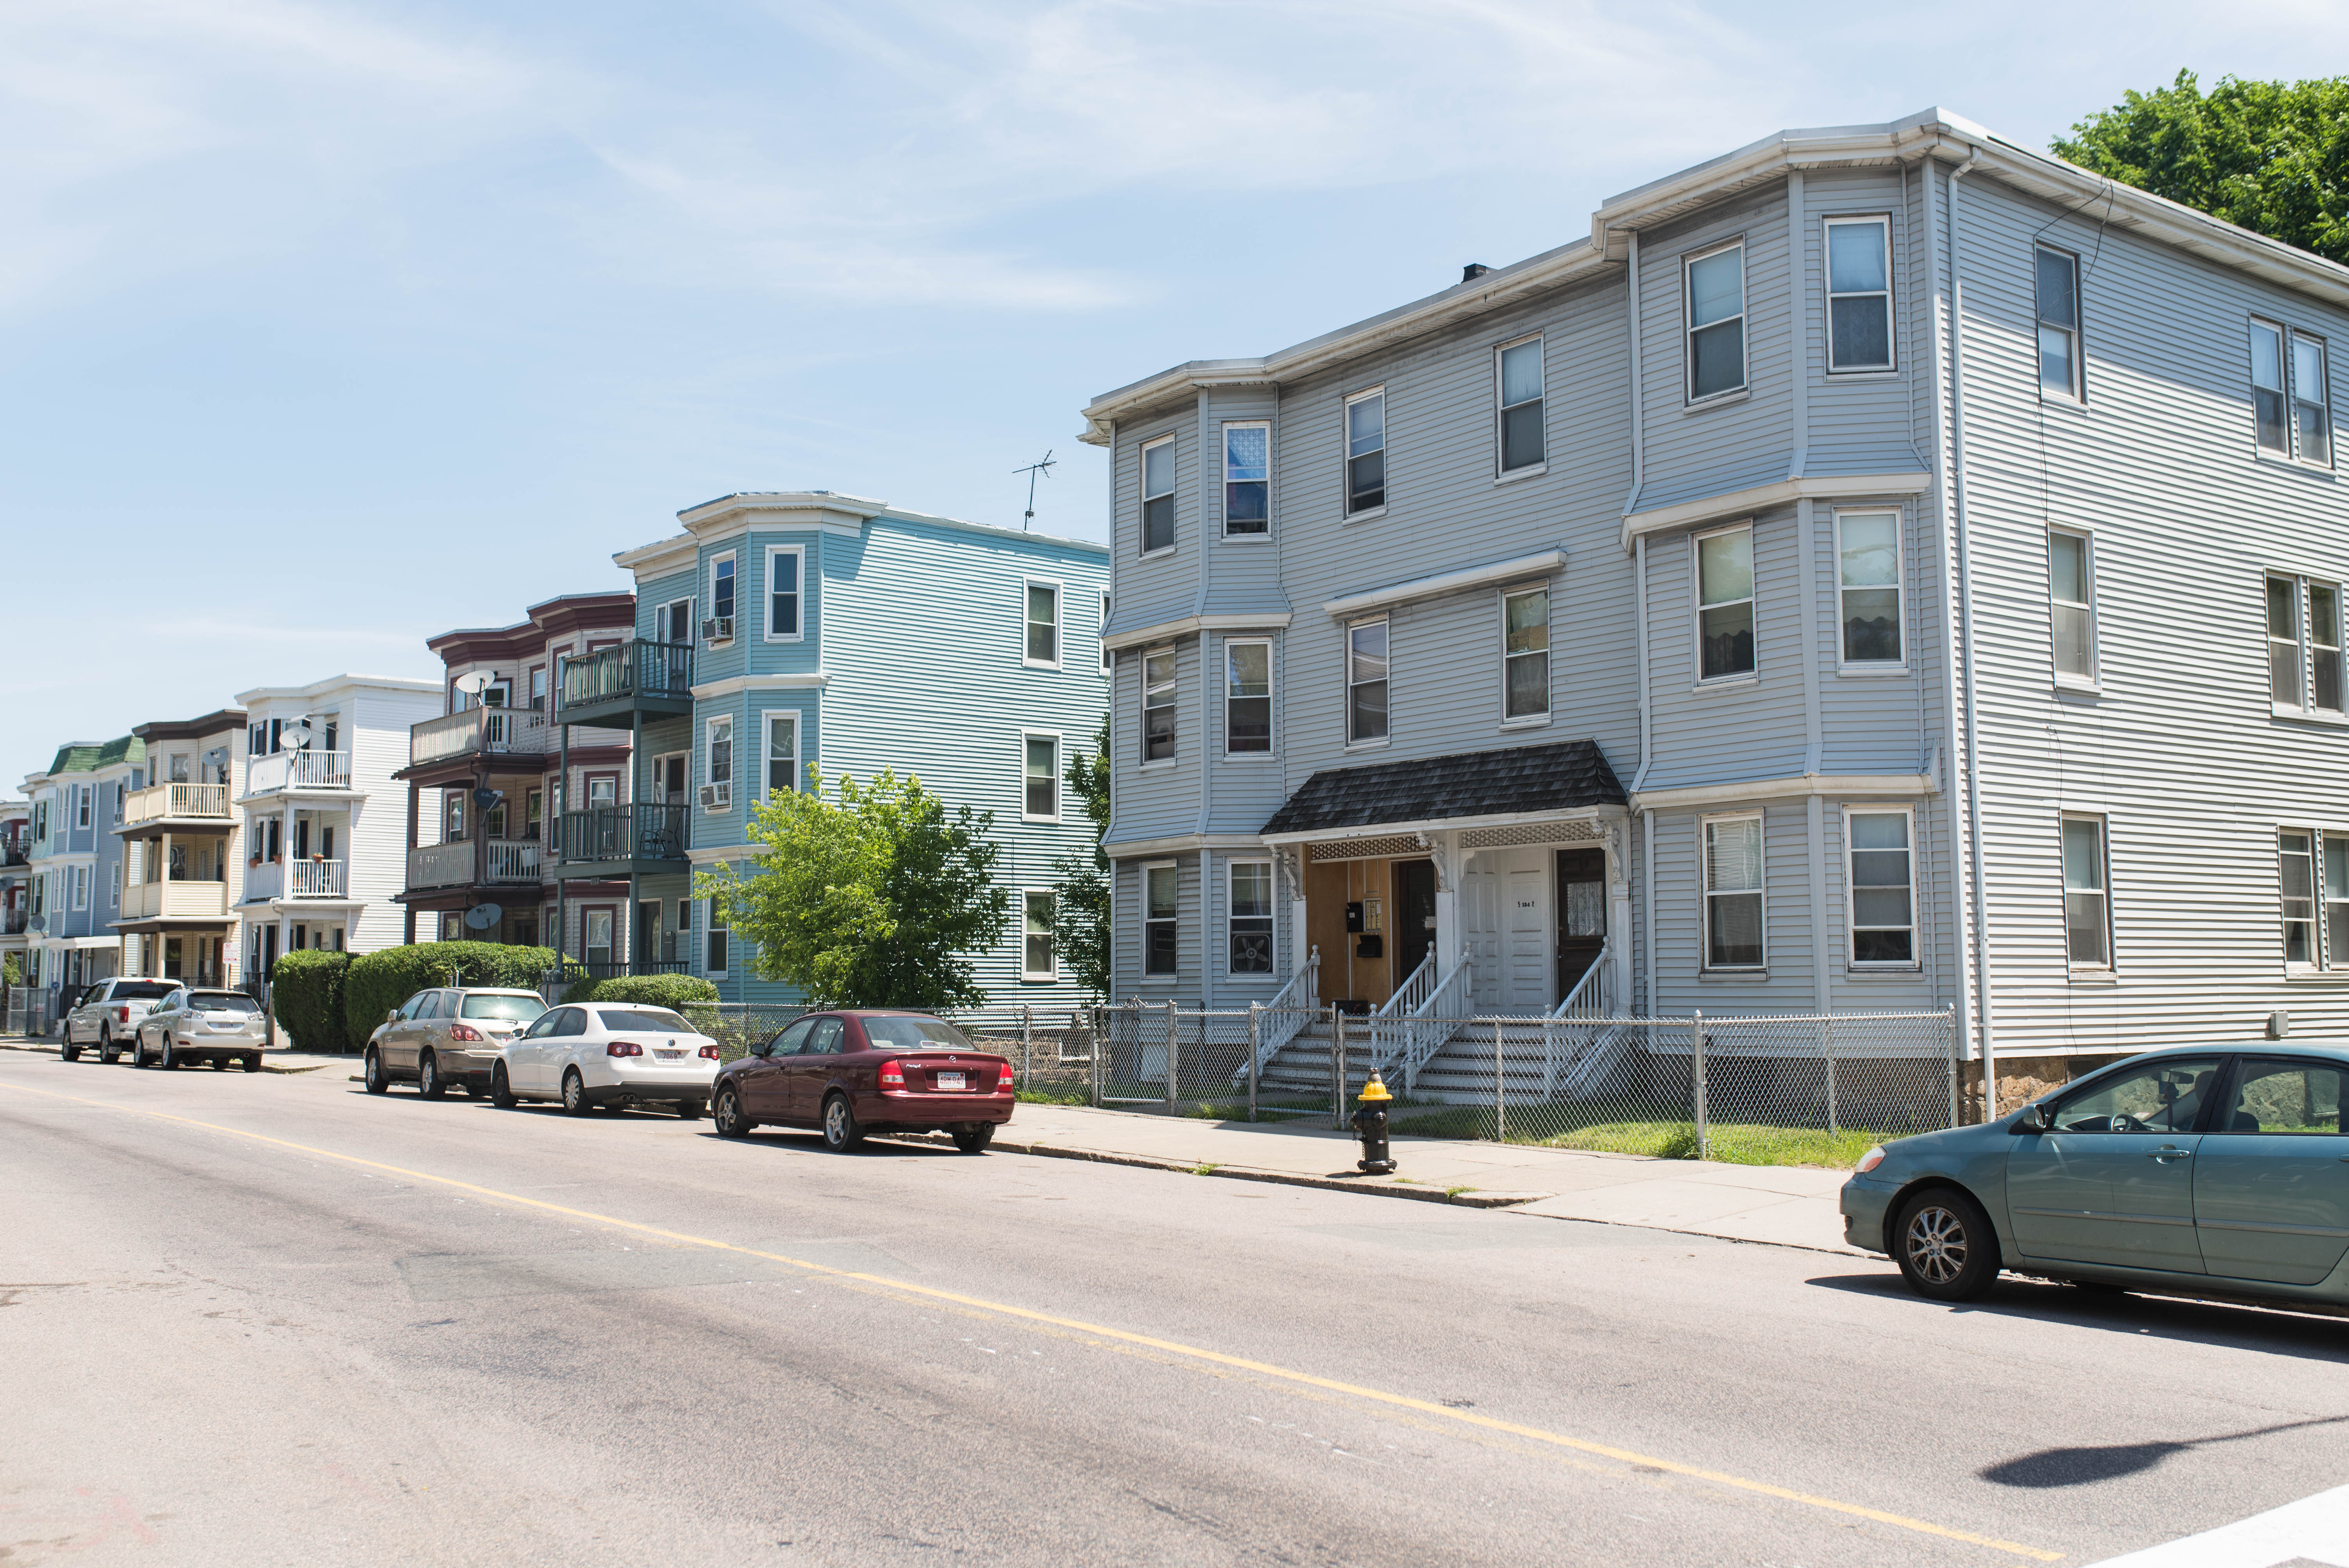 The long view of a row of three-story apartment buildings.